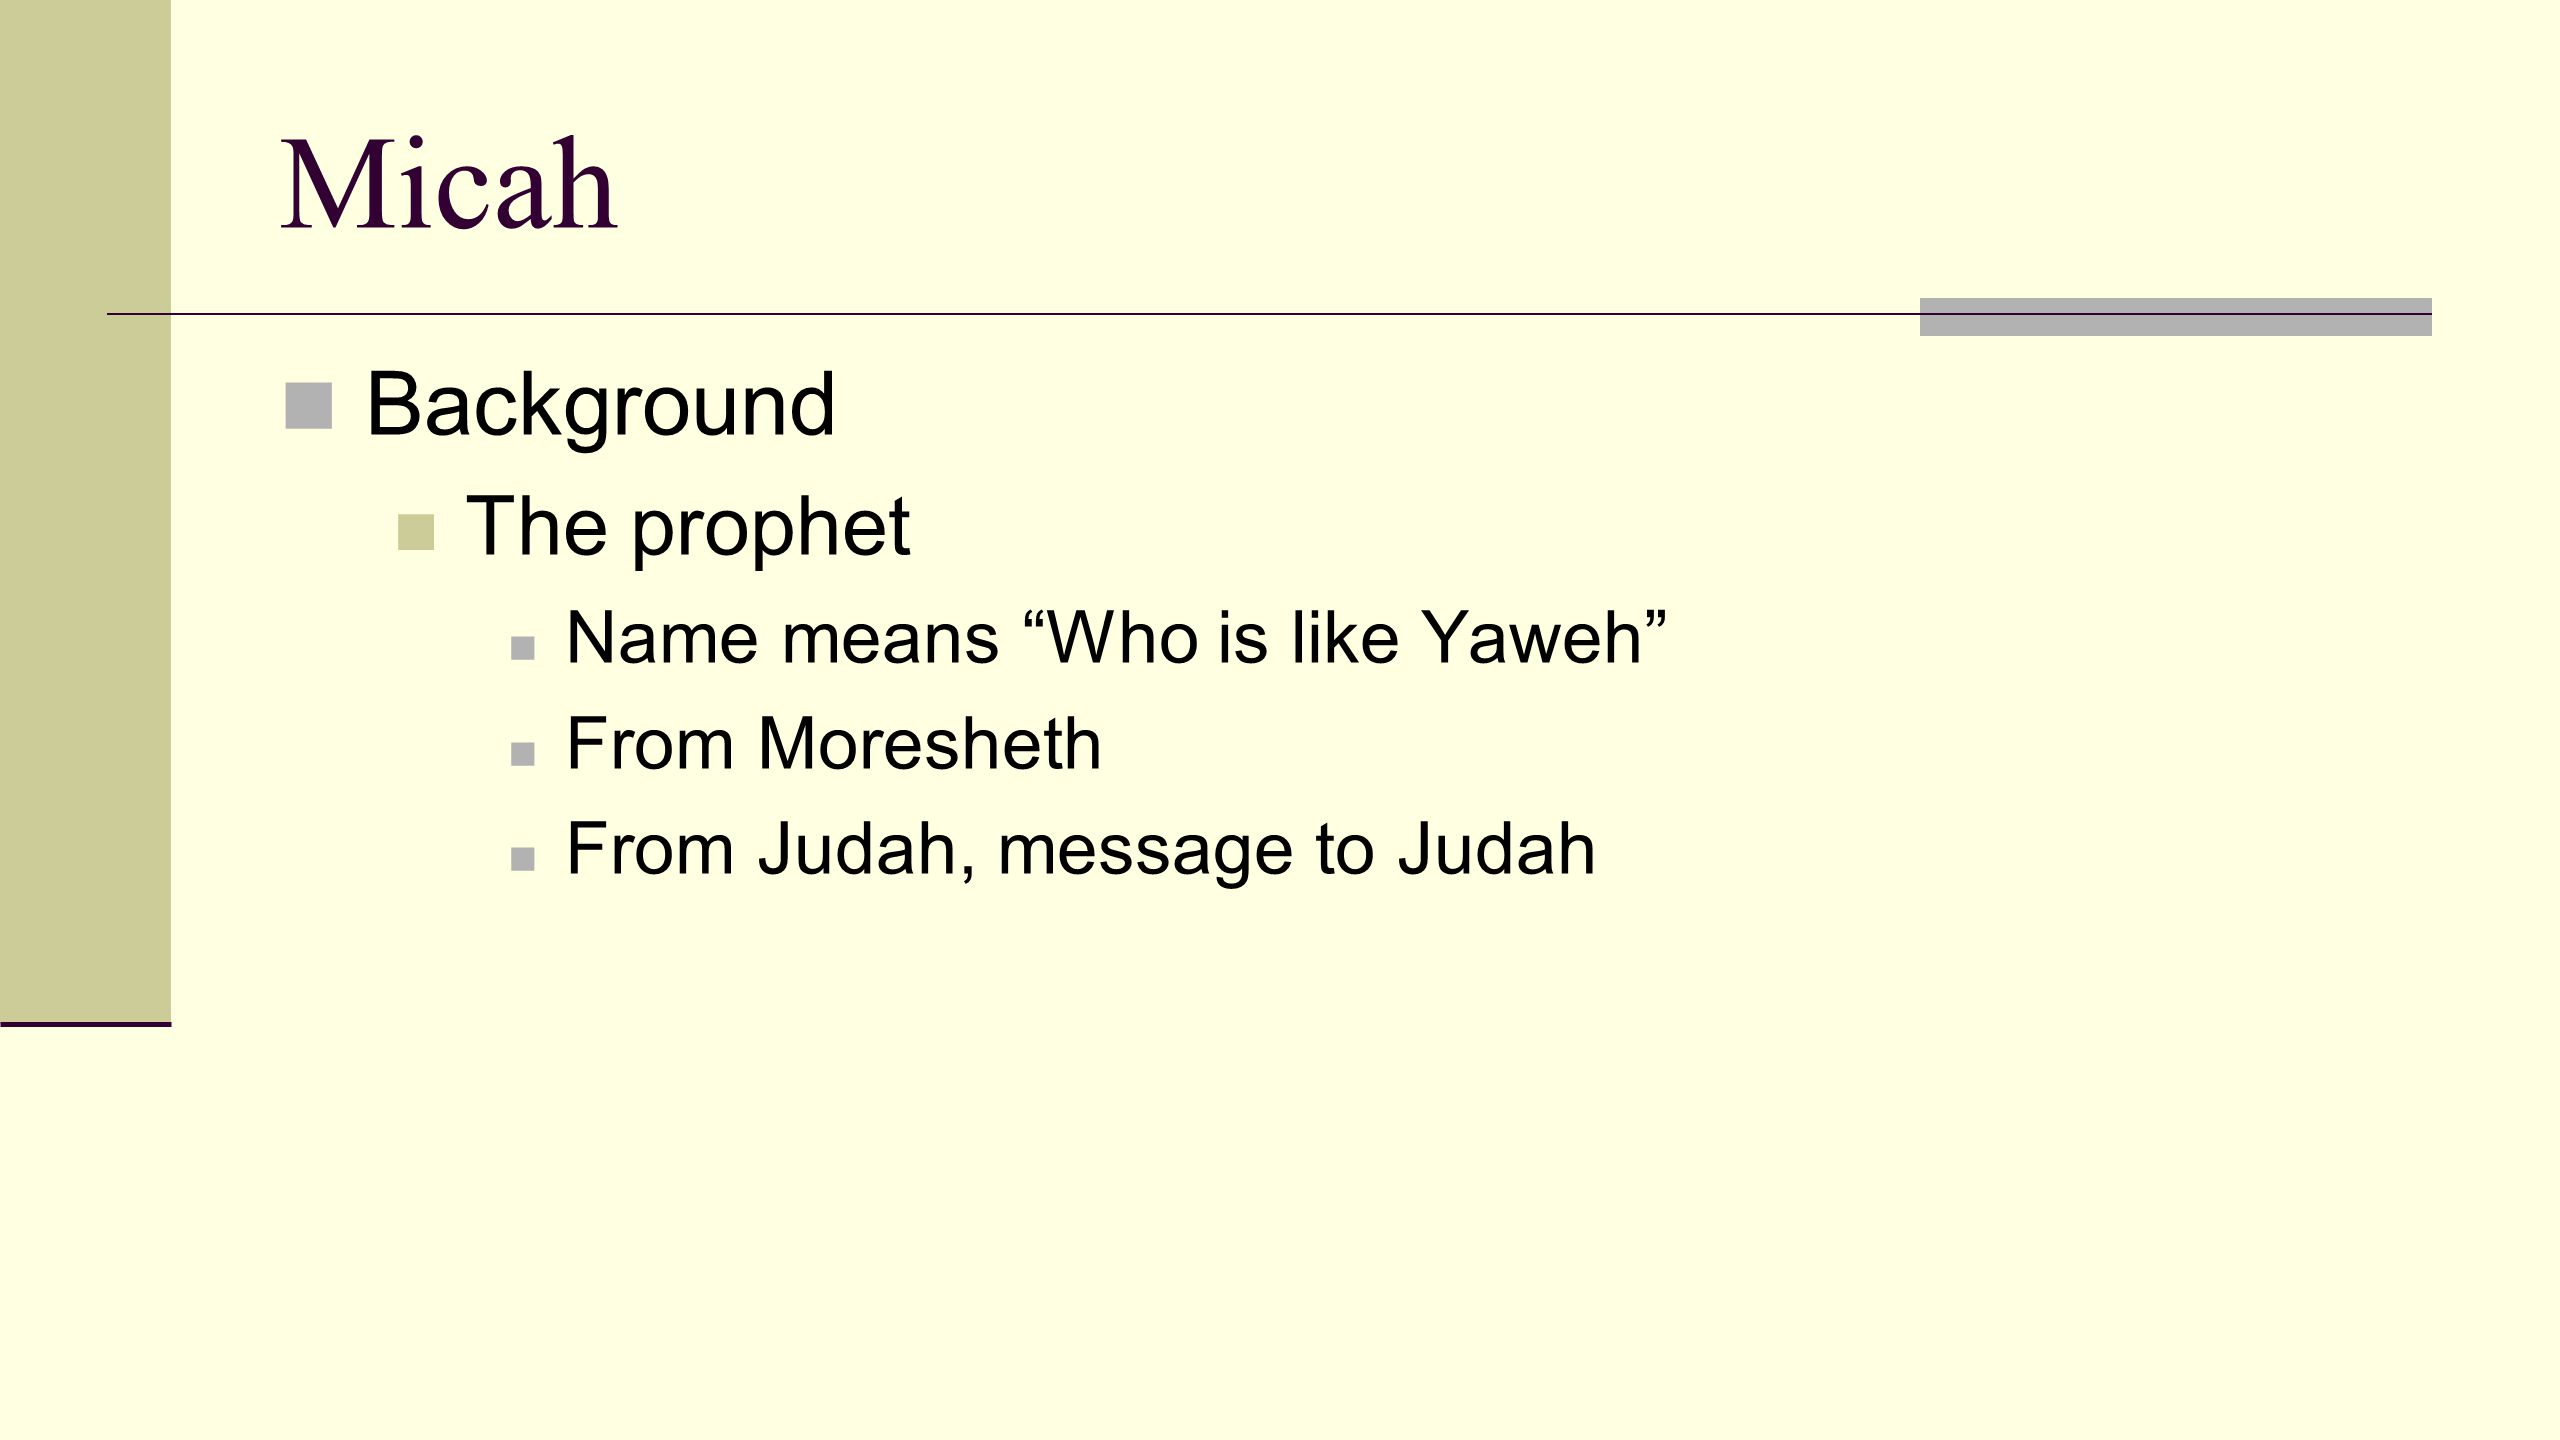 Micah Background The prophet Parallels with Isaiah Mic 2:11 and Is 28:7 Mic 3:5-7 and Is 29:9-12 Mic 3:12 and Is 32:13-14 Mic 4:1-5 and Is 2:2-5 Mic 5:2-4 and Is 7:14, 9:5